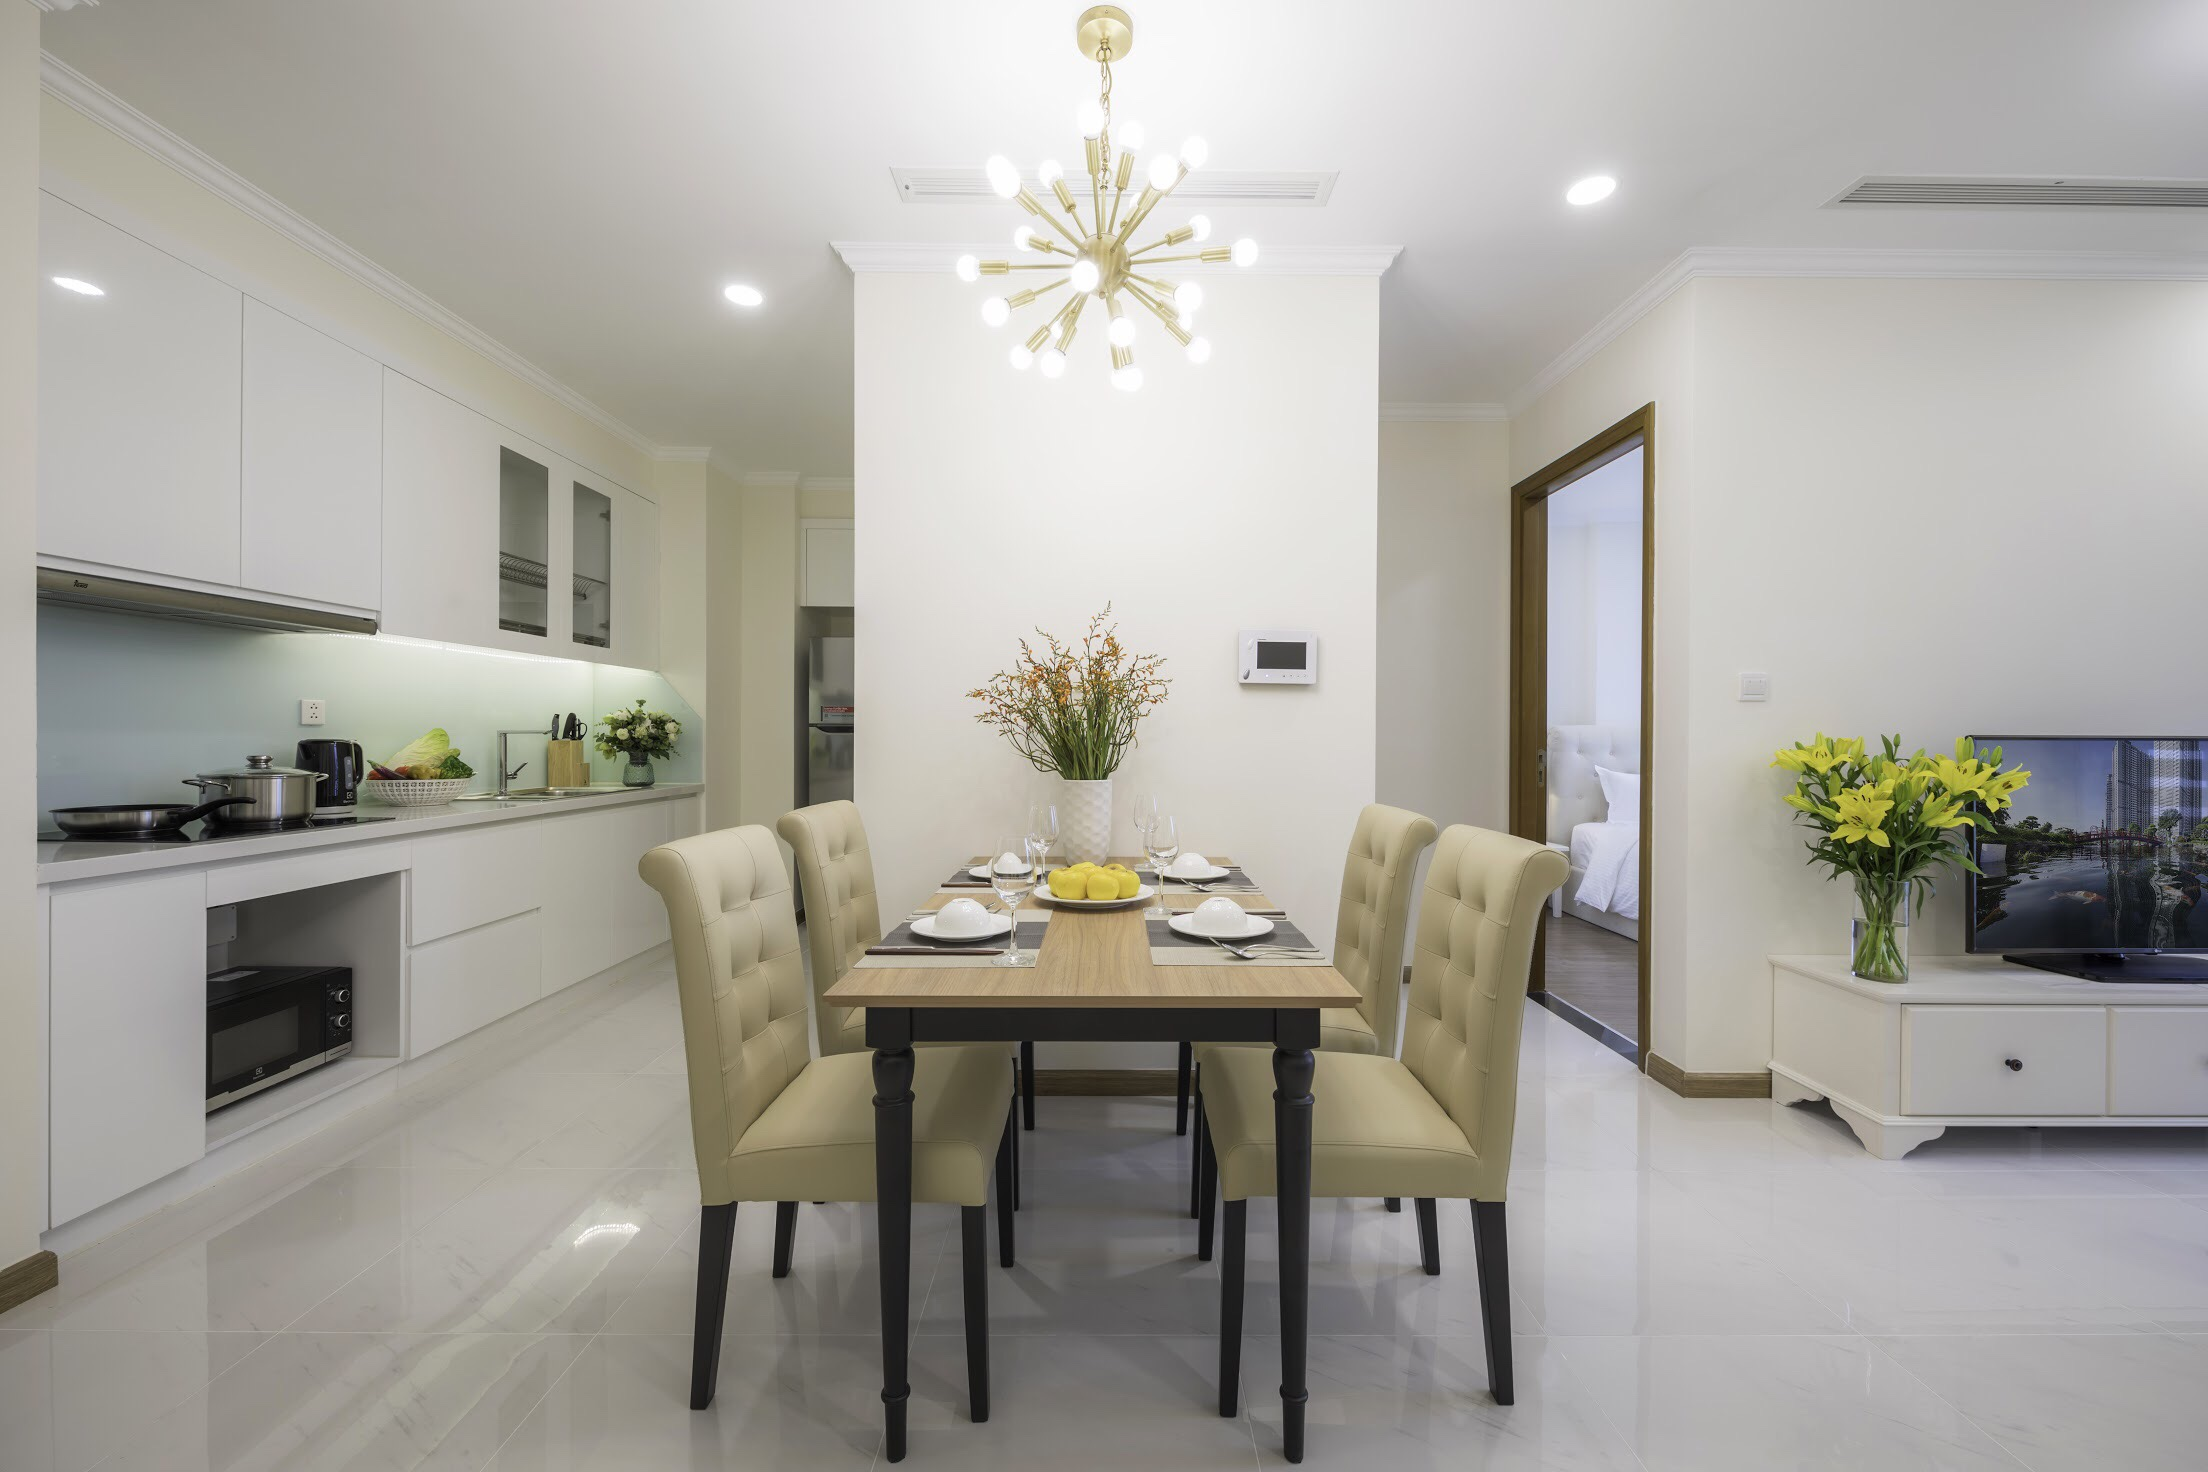 vinhomes central park apartment for rent in binh thanh district hcmc BT105L534 (2)